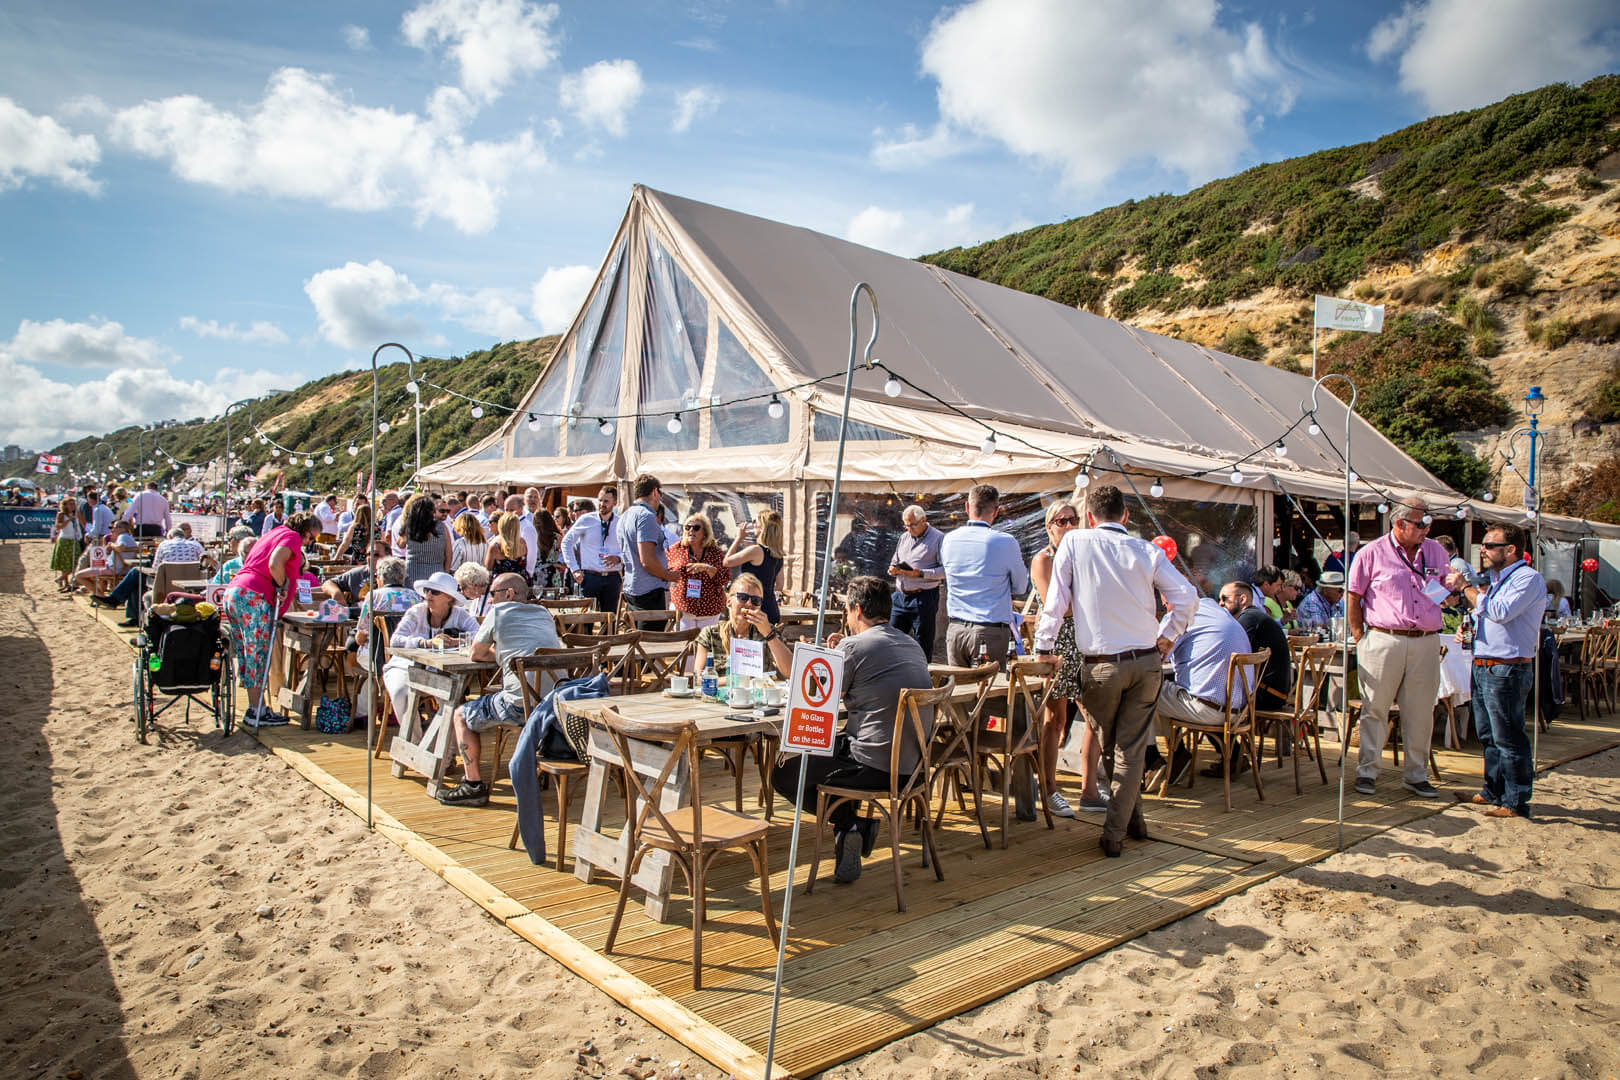 Crowds of people enjoying the hospitality tent on Bournemouth beach for the festival